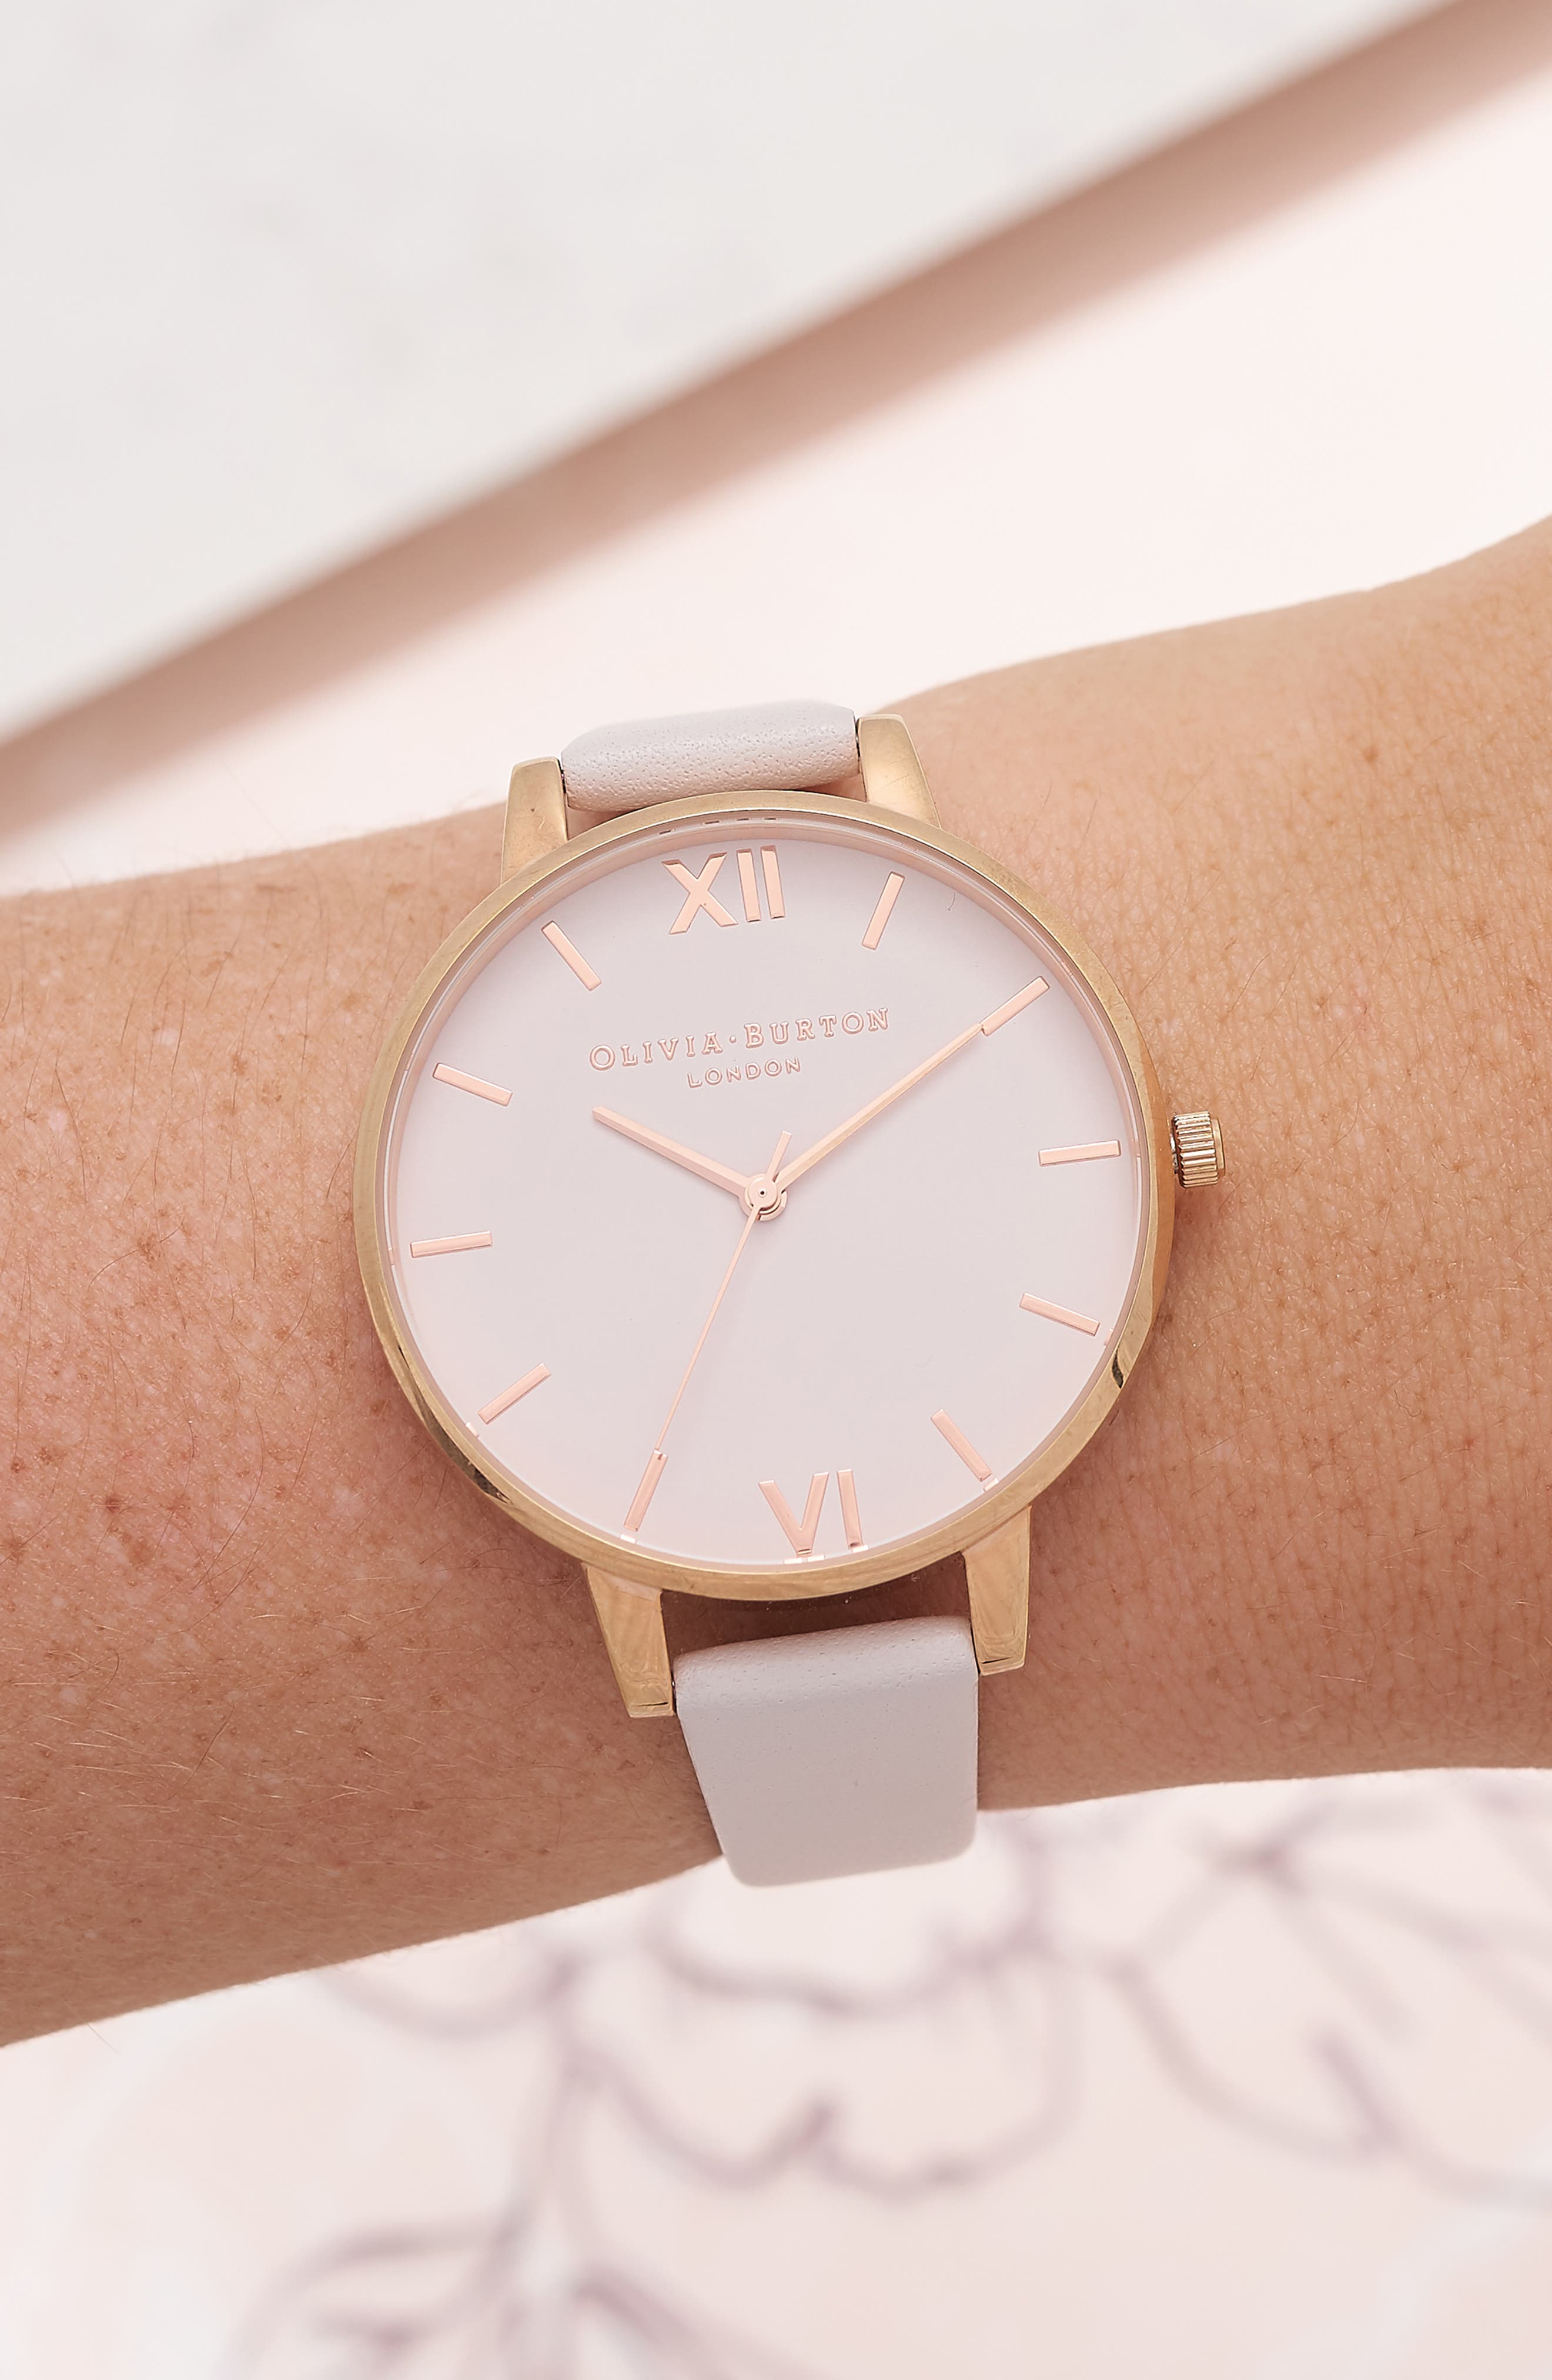 Begin to Blush Leather Strap Watch, 38mm,                             Alternate thumbnail 2, color,                             BLUSH/ ROSE GOLD